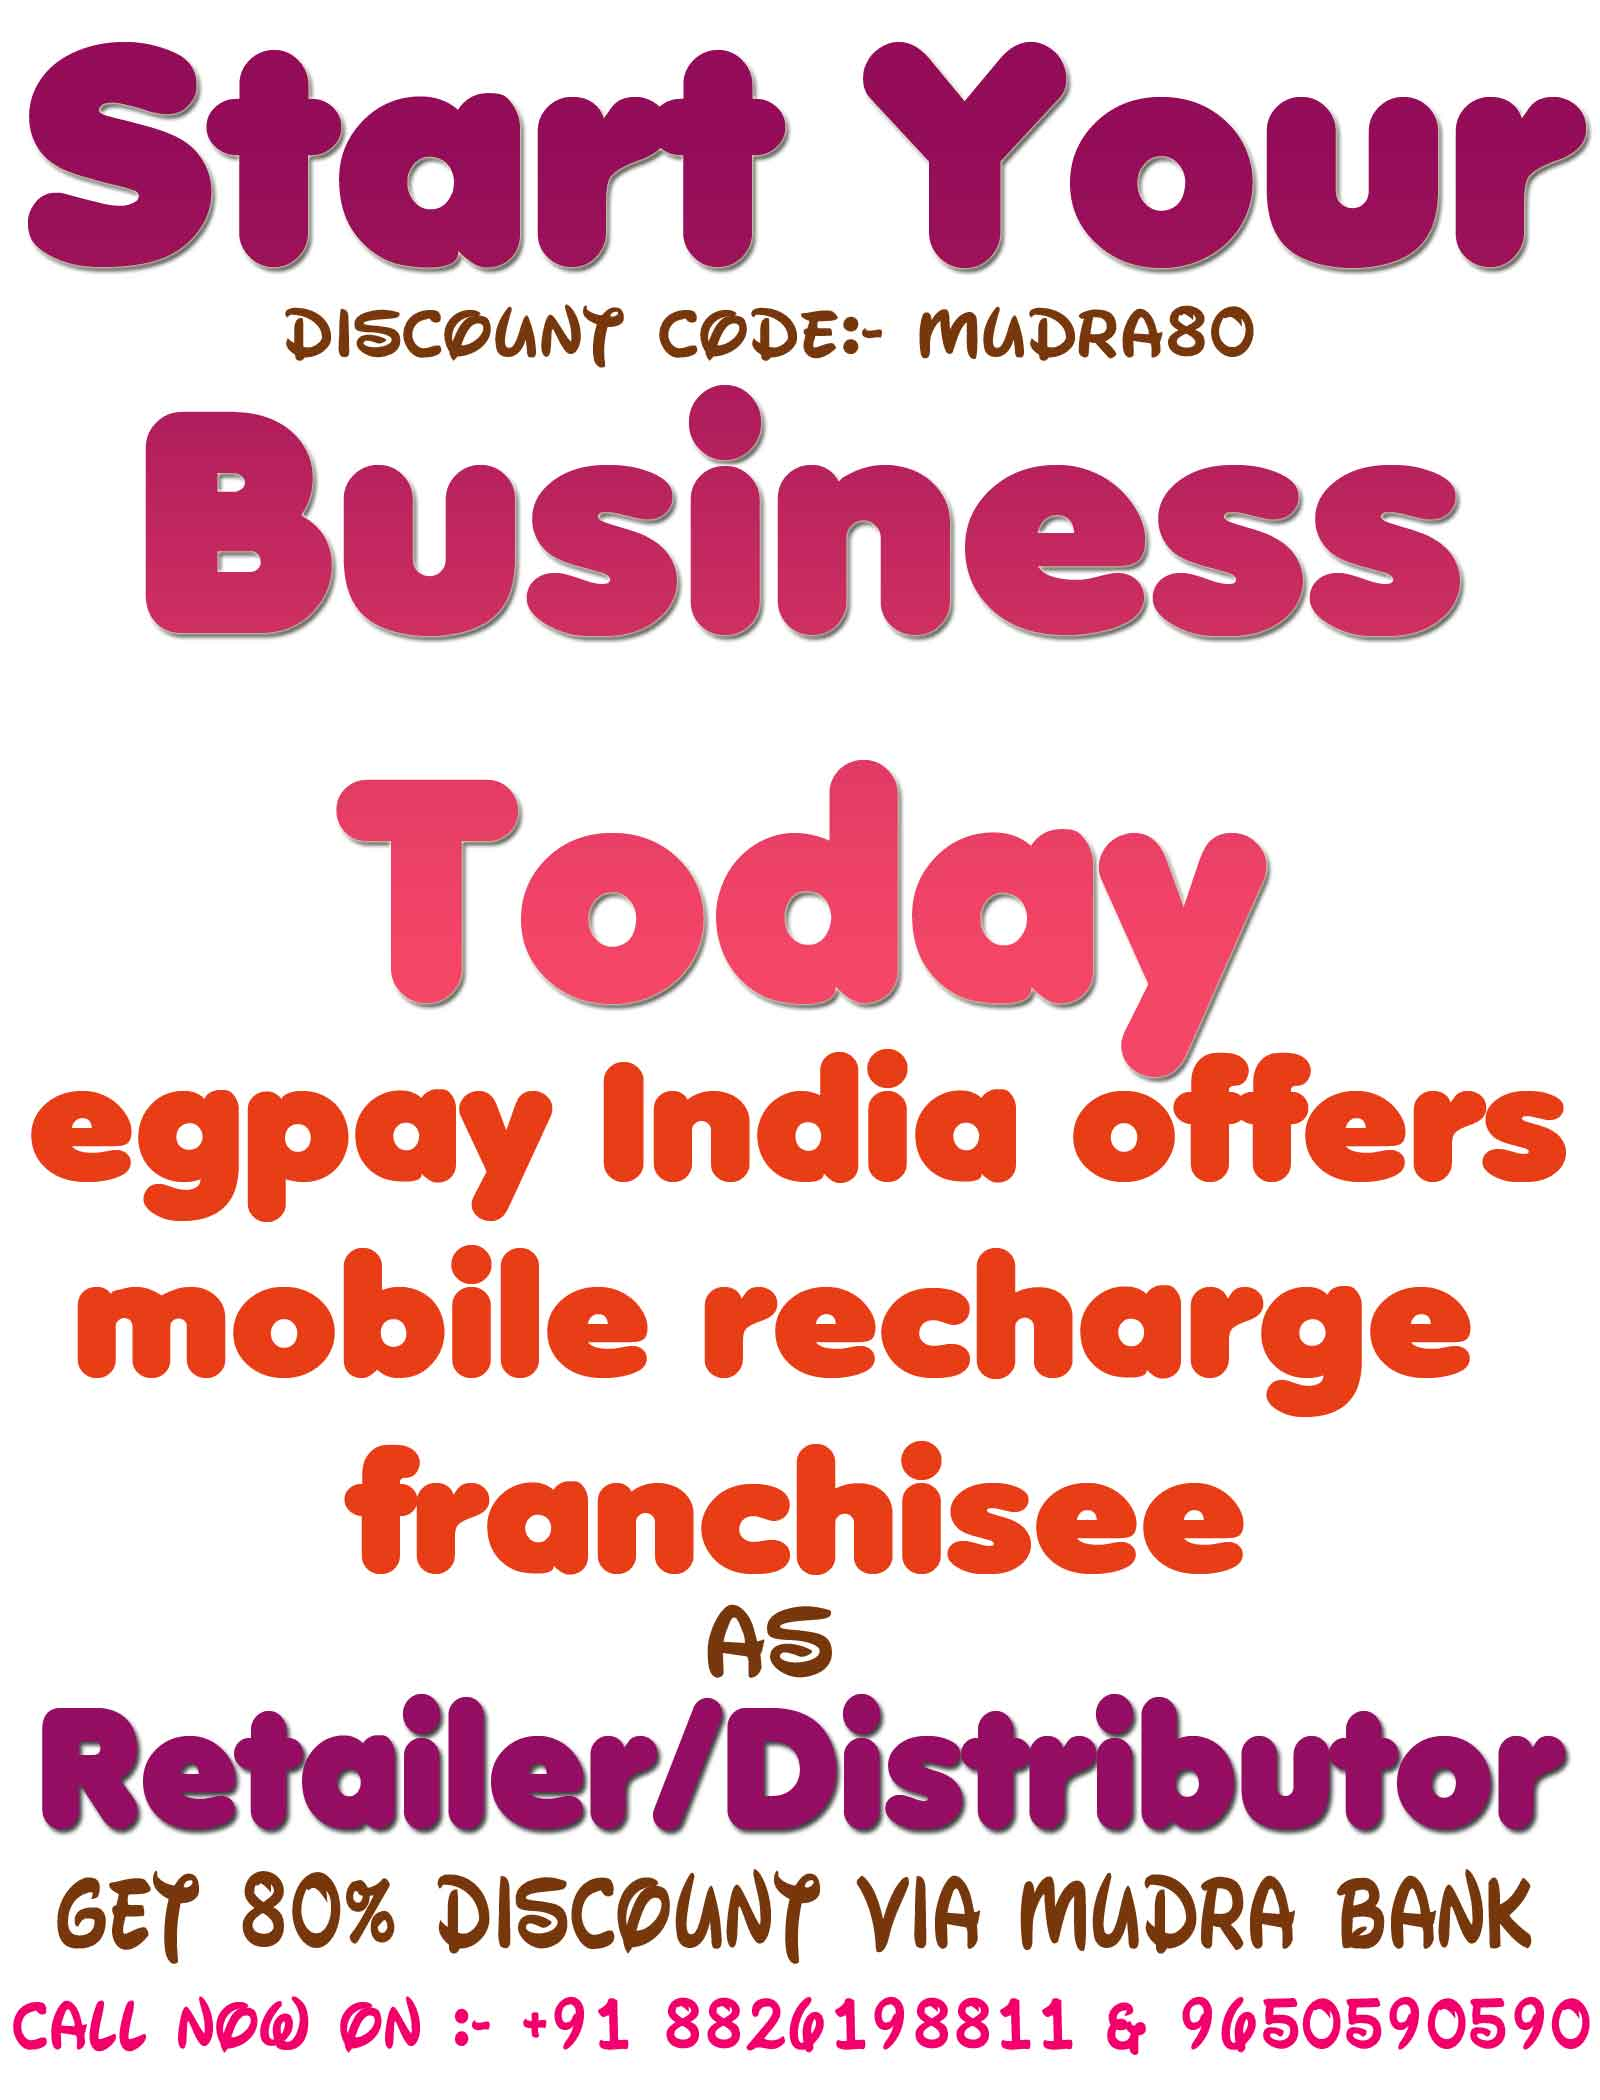 Mudra Bank provides opportunity to start your own business